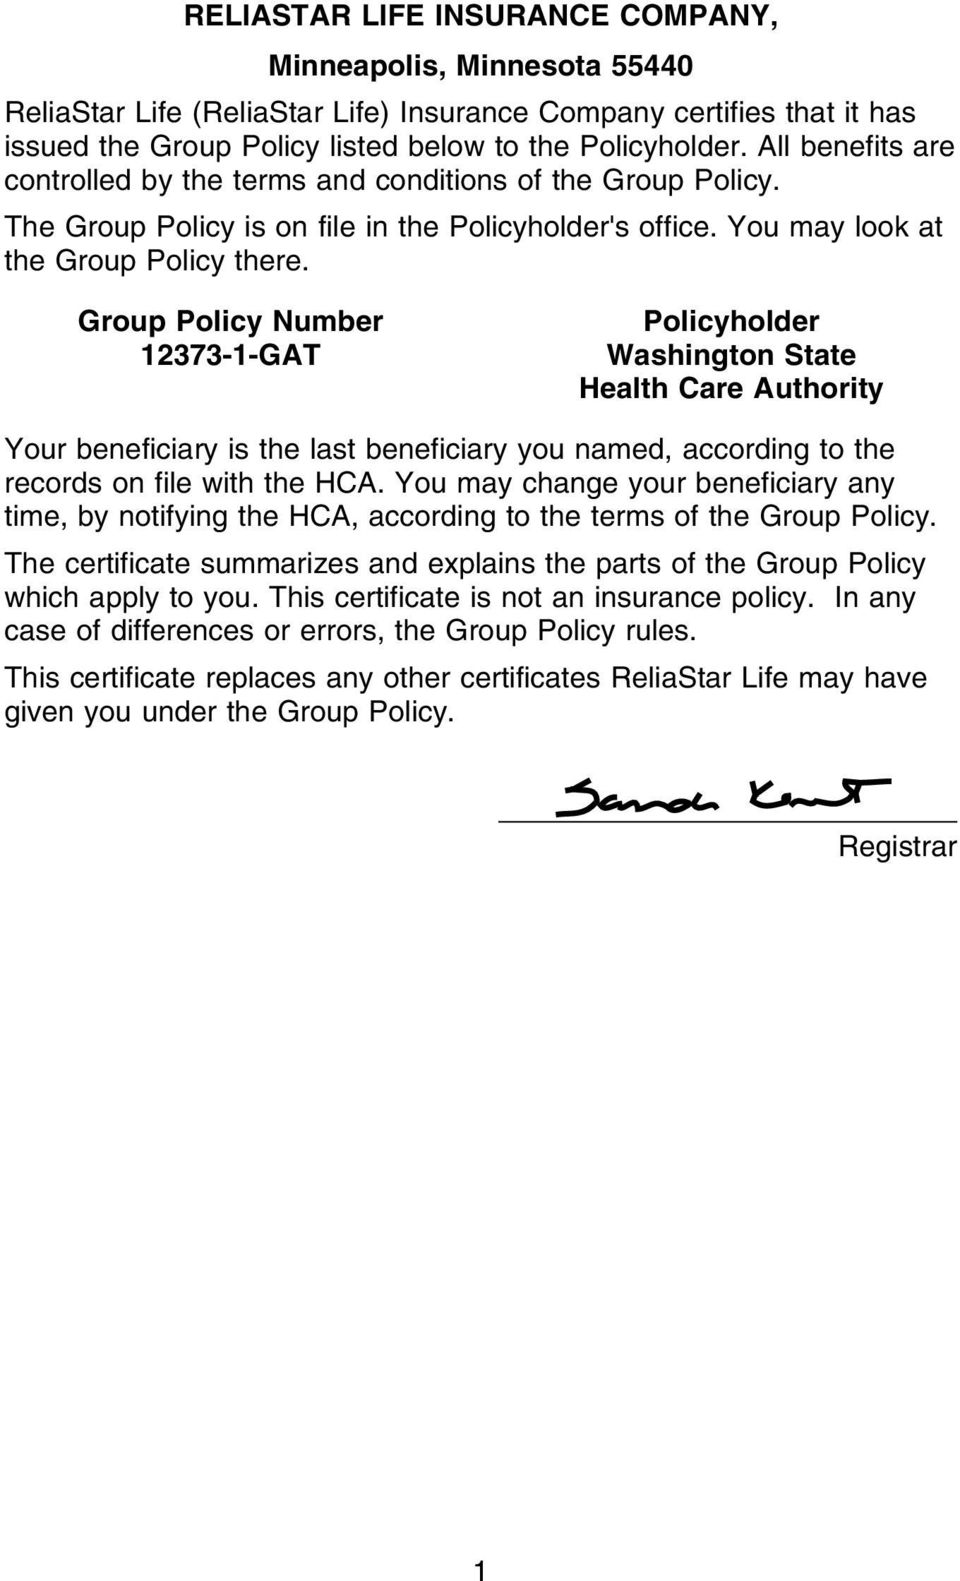 Group Policy Number 12373-1-GAT Policyholder Washington State Health Care Authority Your beneficiary is the last beneficiary you named, according to the records on file with the HCA.